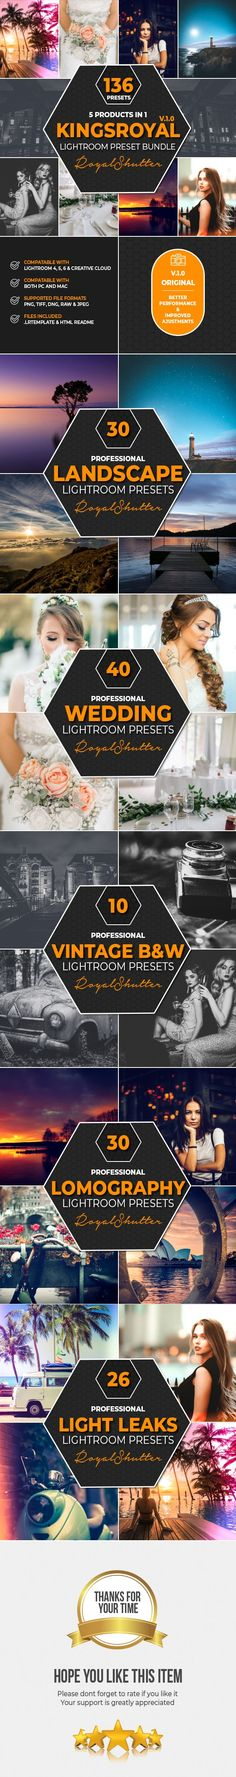 Buy 5 IN 1 KingsRoyal Lightroom Presets Bundle by RoyalShutter on GraphicRiver. 5 IN 1 KingsRoyal Lightroom Presets Bundle This 5 in 1 bundle, that includes a wopping 136 premium presets is a am.